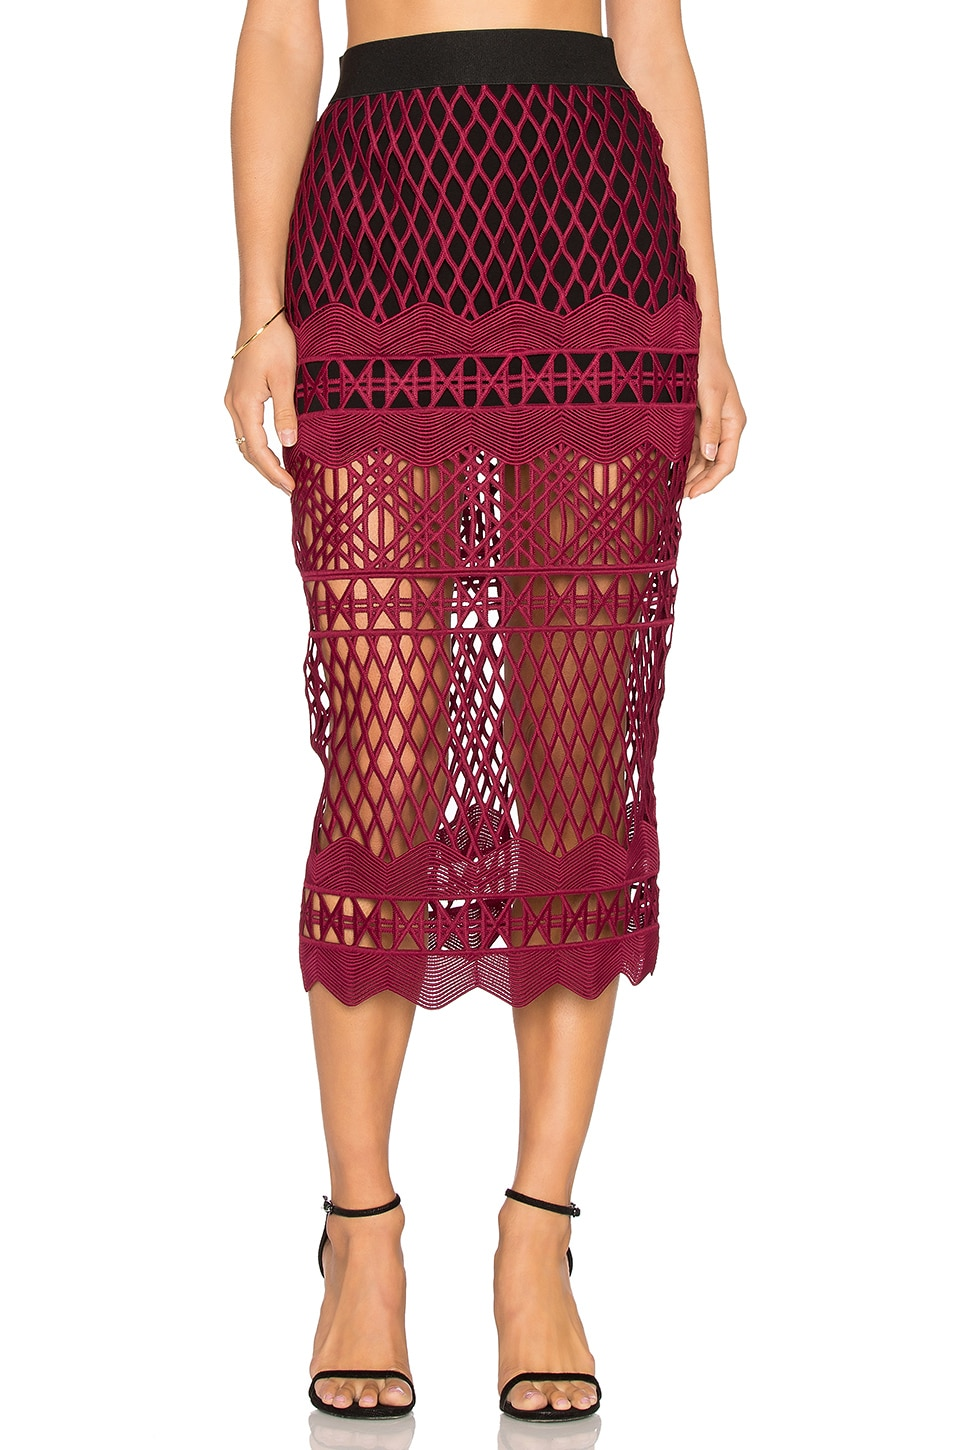 Cut Out Lace Pencil Skirt